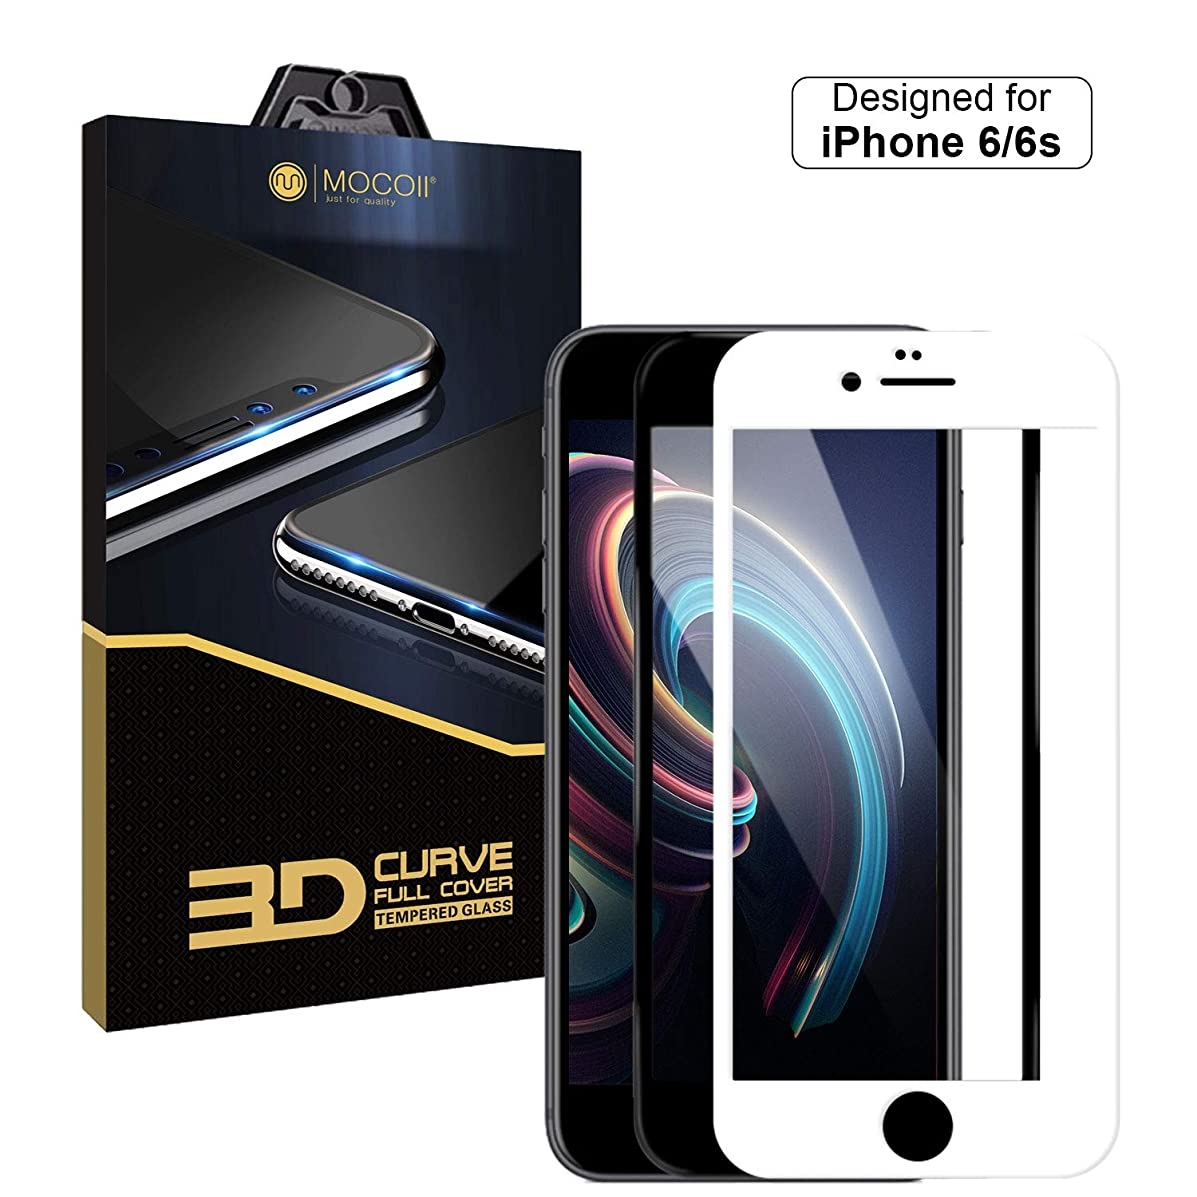 """MOCOLL 3D Curved Edge Full Cover Tempered Screen Protector for iPhone 6 Plus/ 6s Plus Screen Protector Tempered Glass Cover Shield Ultra Clear Anti-Scratch Screen Size 5.5"""" White"""